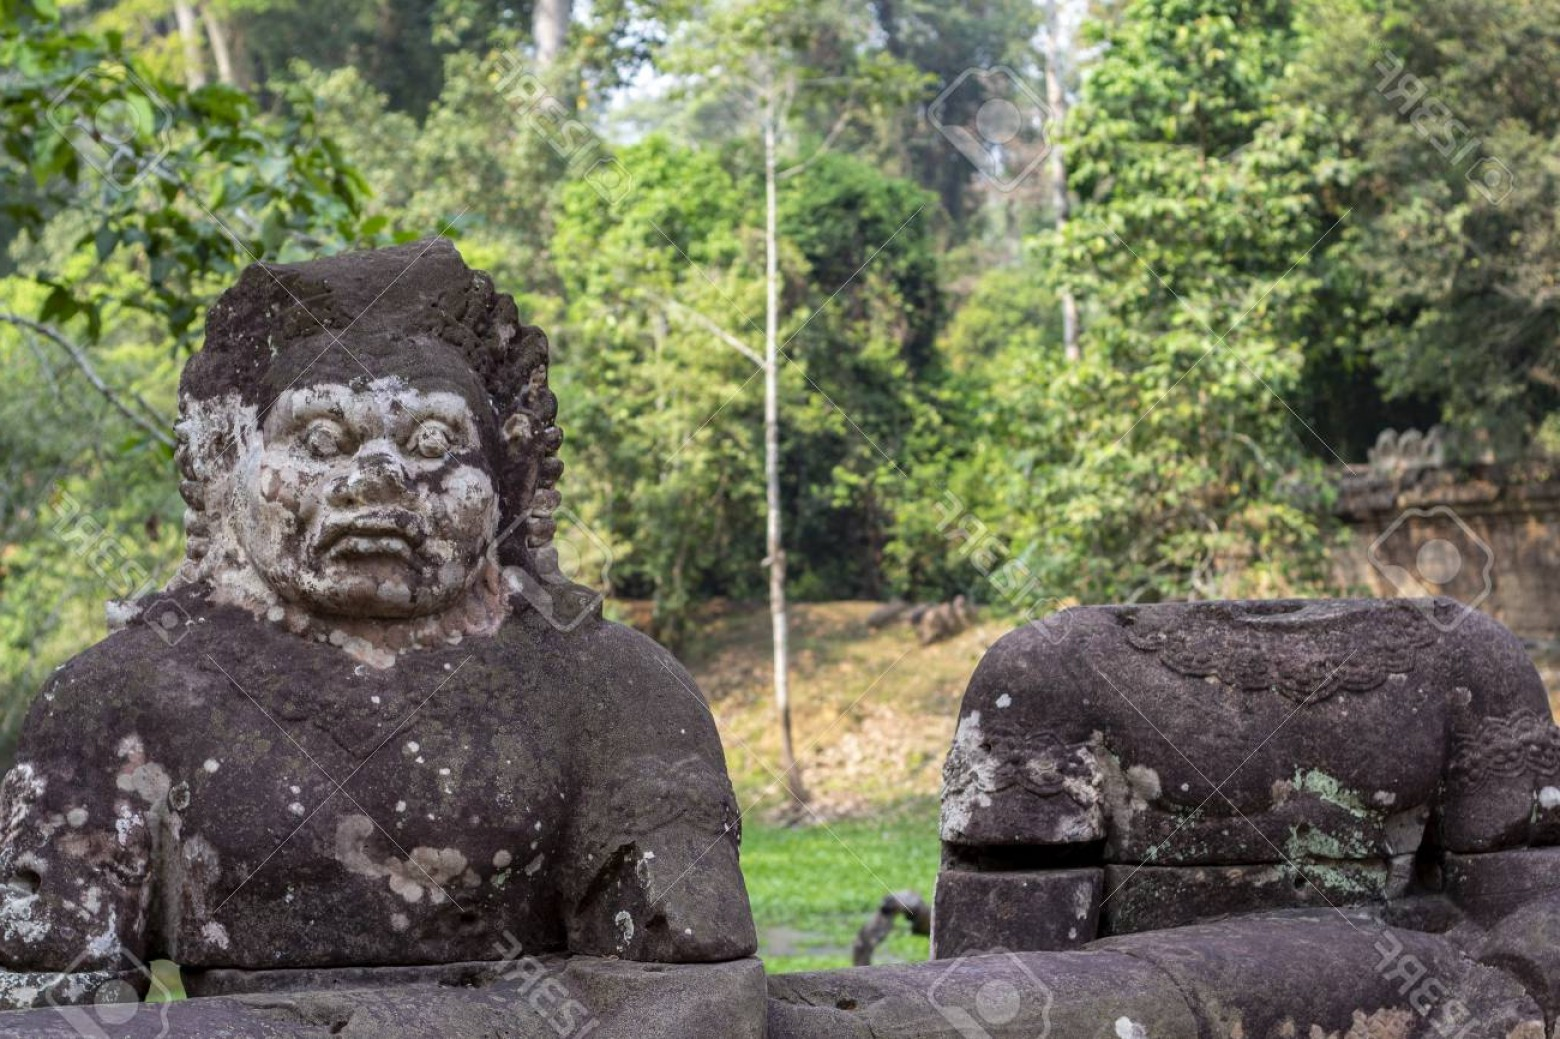 Ancient Jungle Statue Vector Images: Photokhmer Man Mossy Stone Statue Angkor Wat Temple Cambodia Whole And Headless Human Statue Ancient Temp